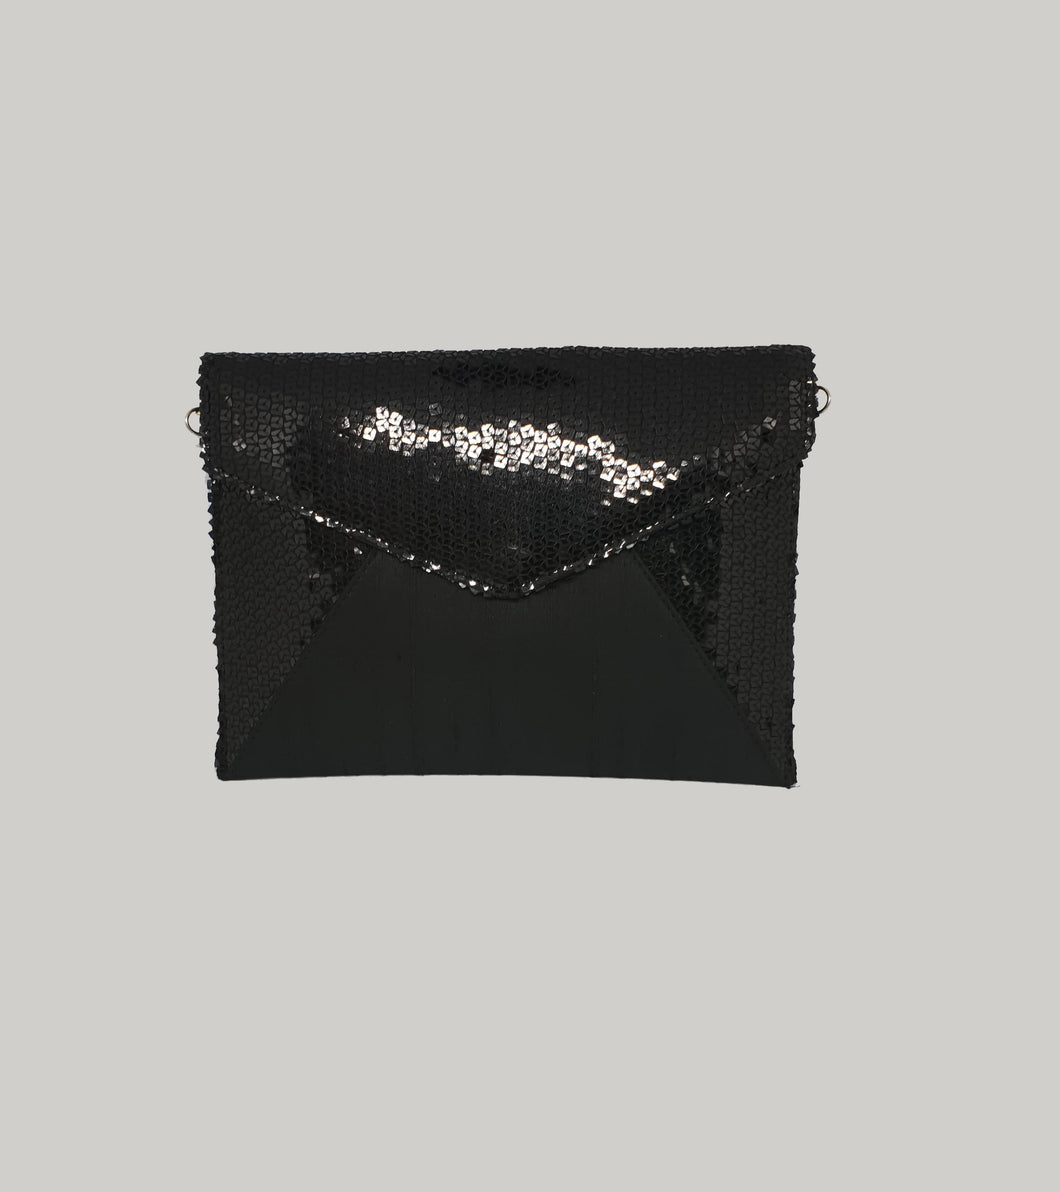 Black Sequin Envelope Clutch